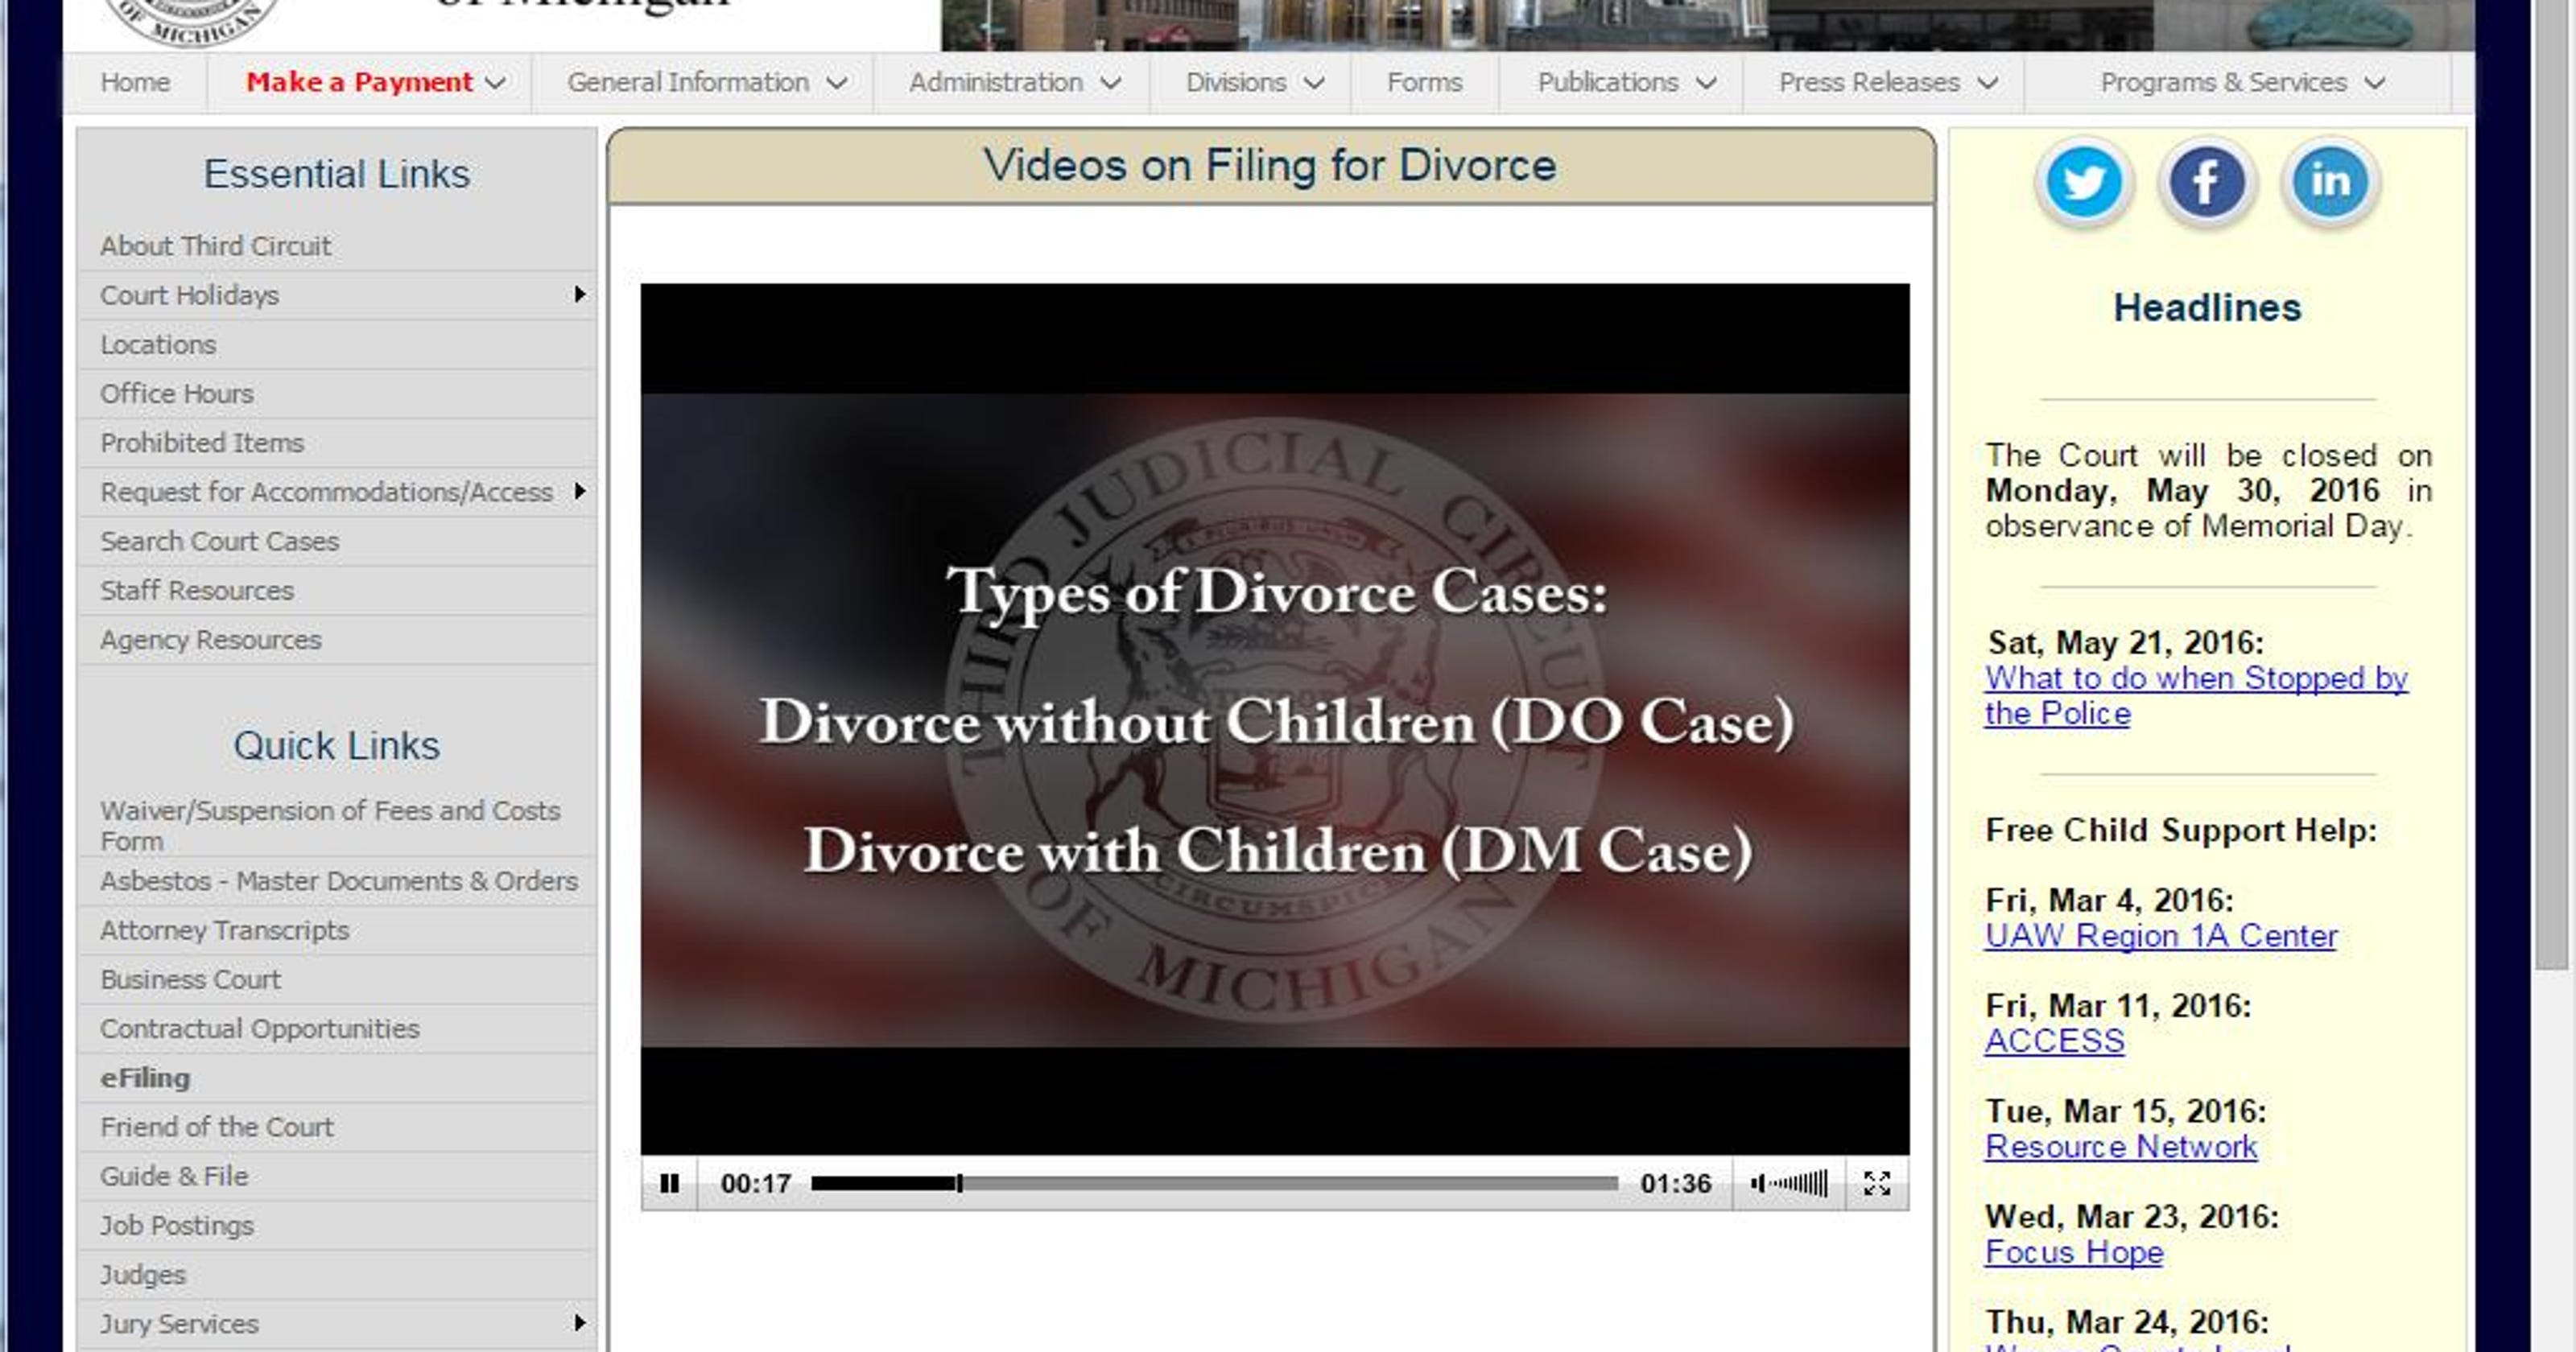 Wayne court video takes mystery out of filing for divorce solutioingenieria Gallery